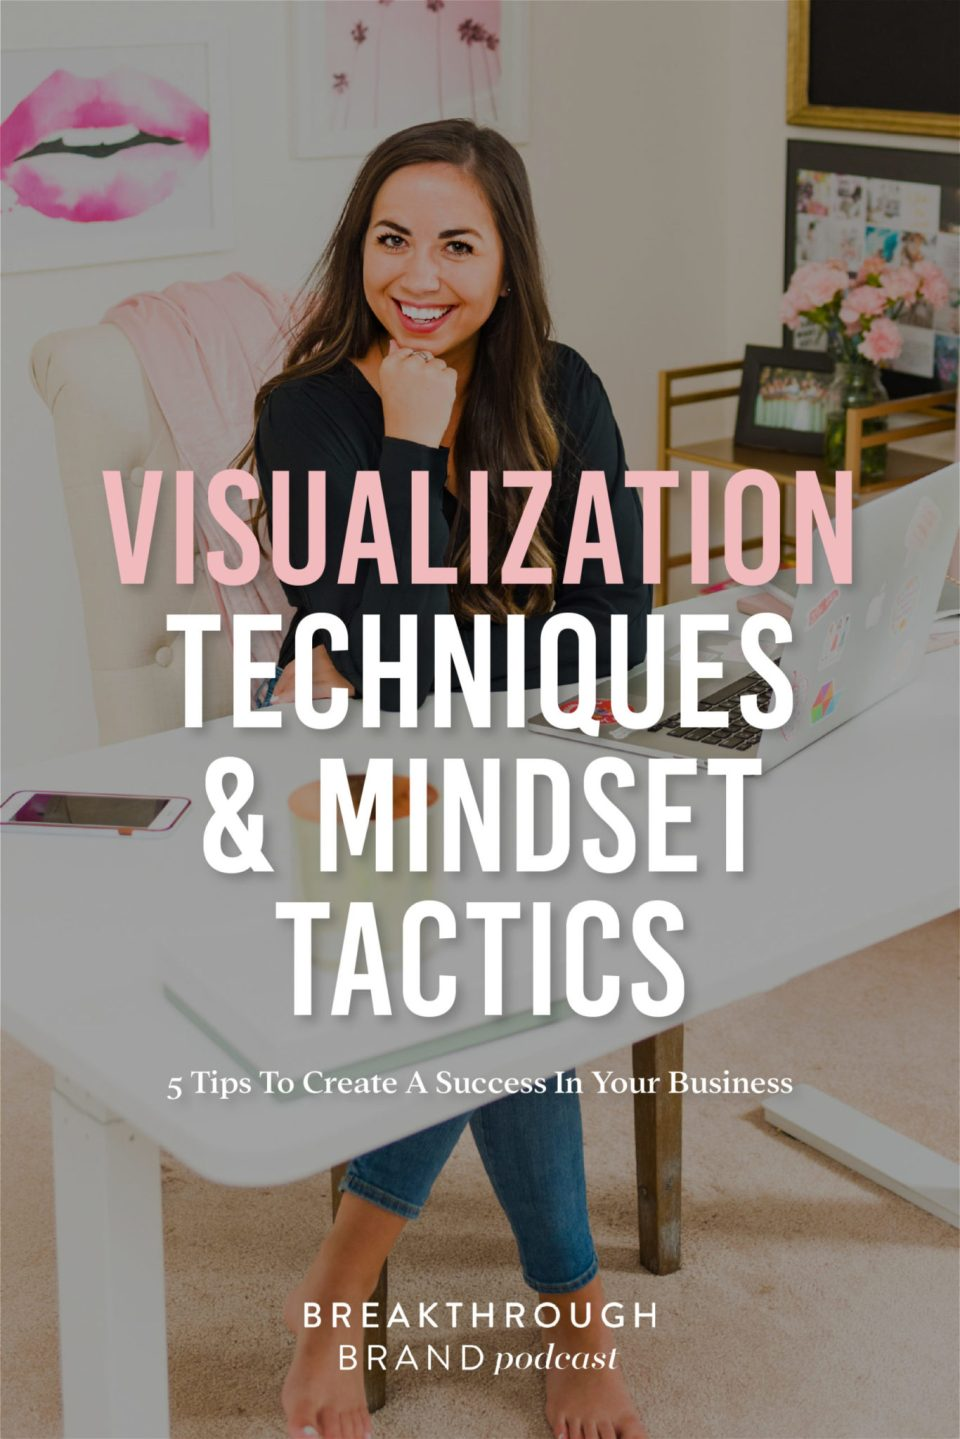 Learn 5 tips to use visualization techniques and mindset tactics to create a success in your business with Elizabeth McCravy on the Breakthrough Brand Podcast.